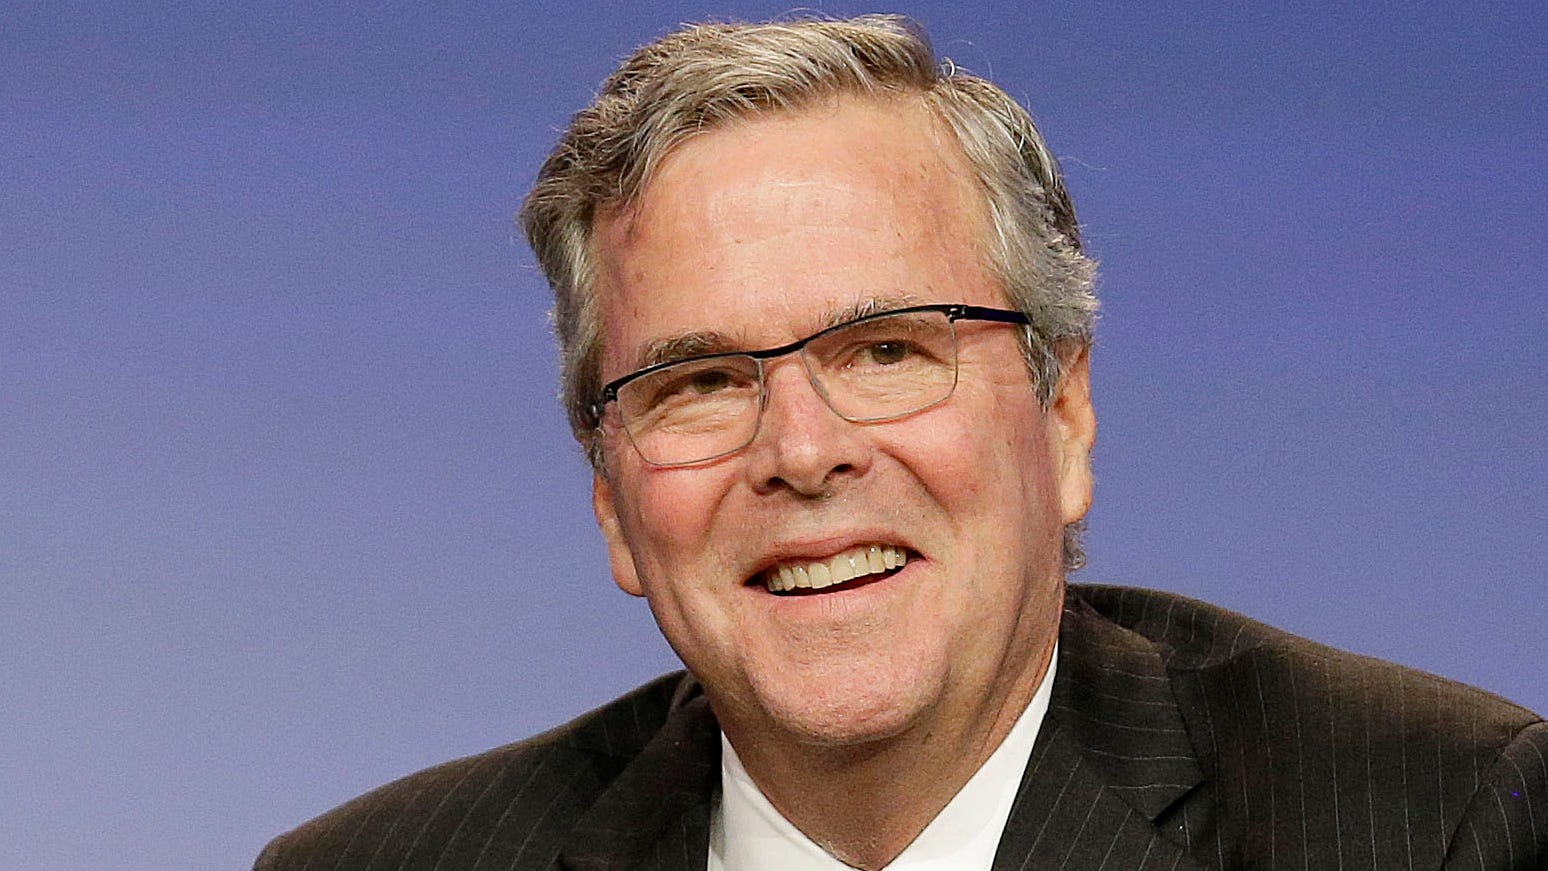 Jeb Bush, former Florida governor and presidential candidate, will address the West Michigan Policy Forum in Grand Rapids on Monday, September 24, 2018.